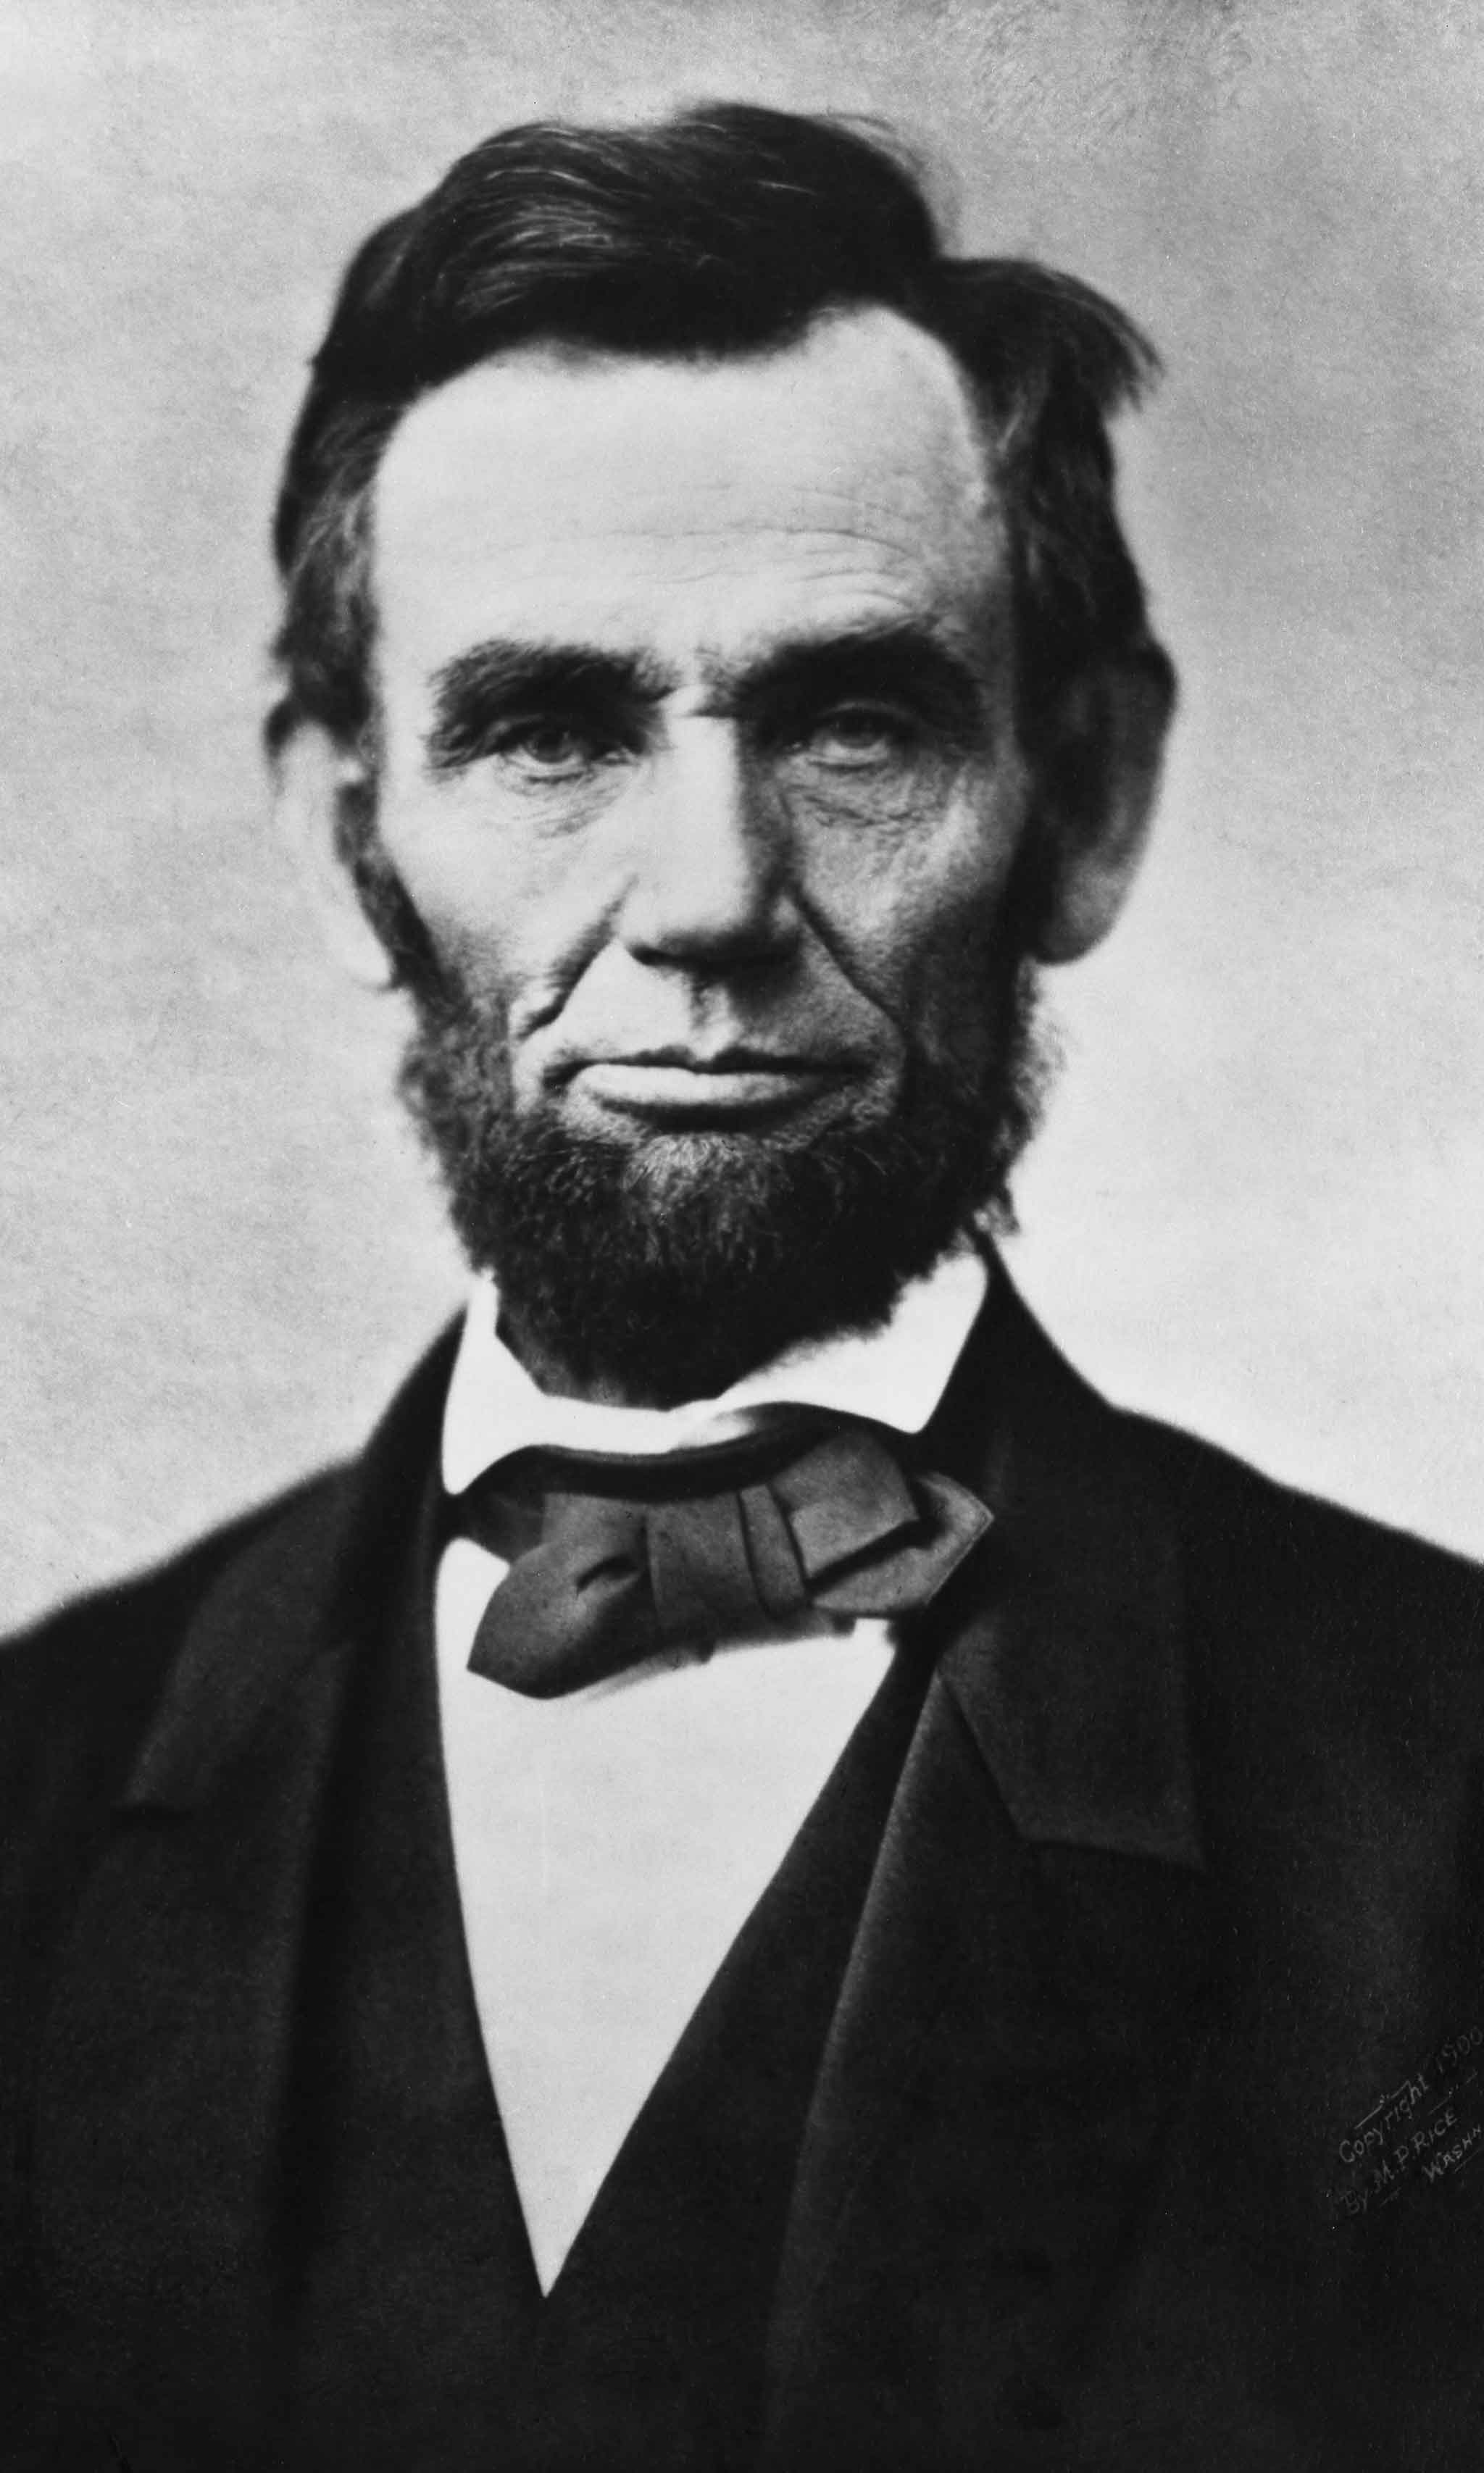 Portrait of Abraham Lincoln | Image courtesy of Wikipedia